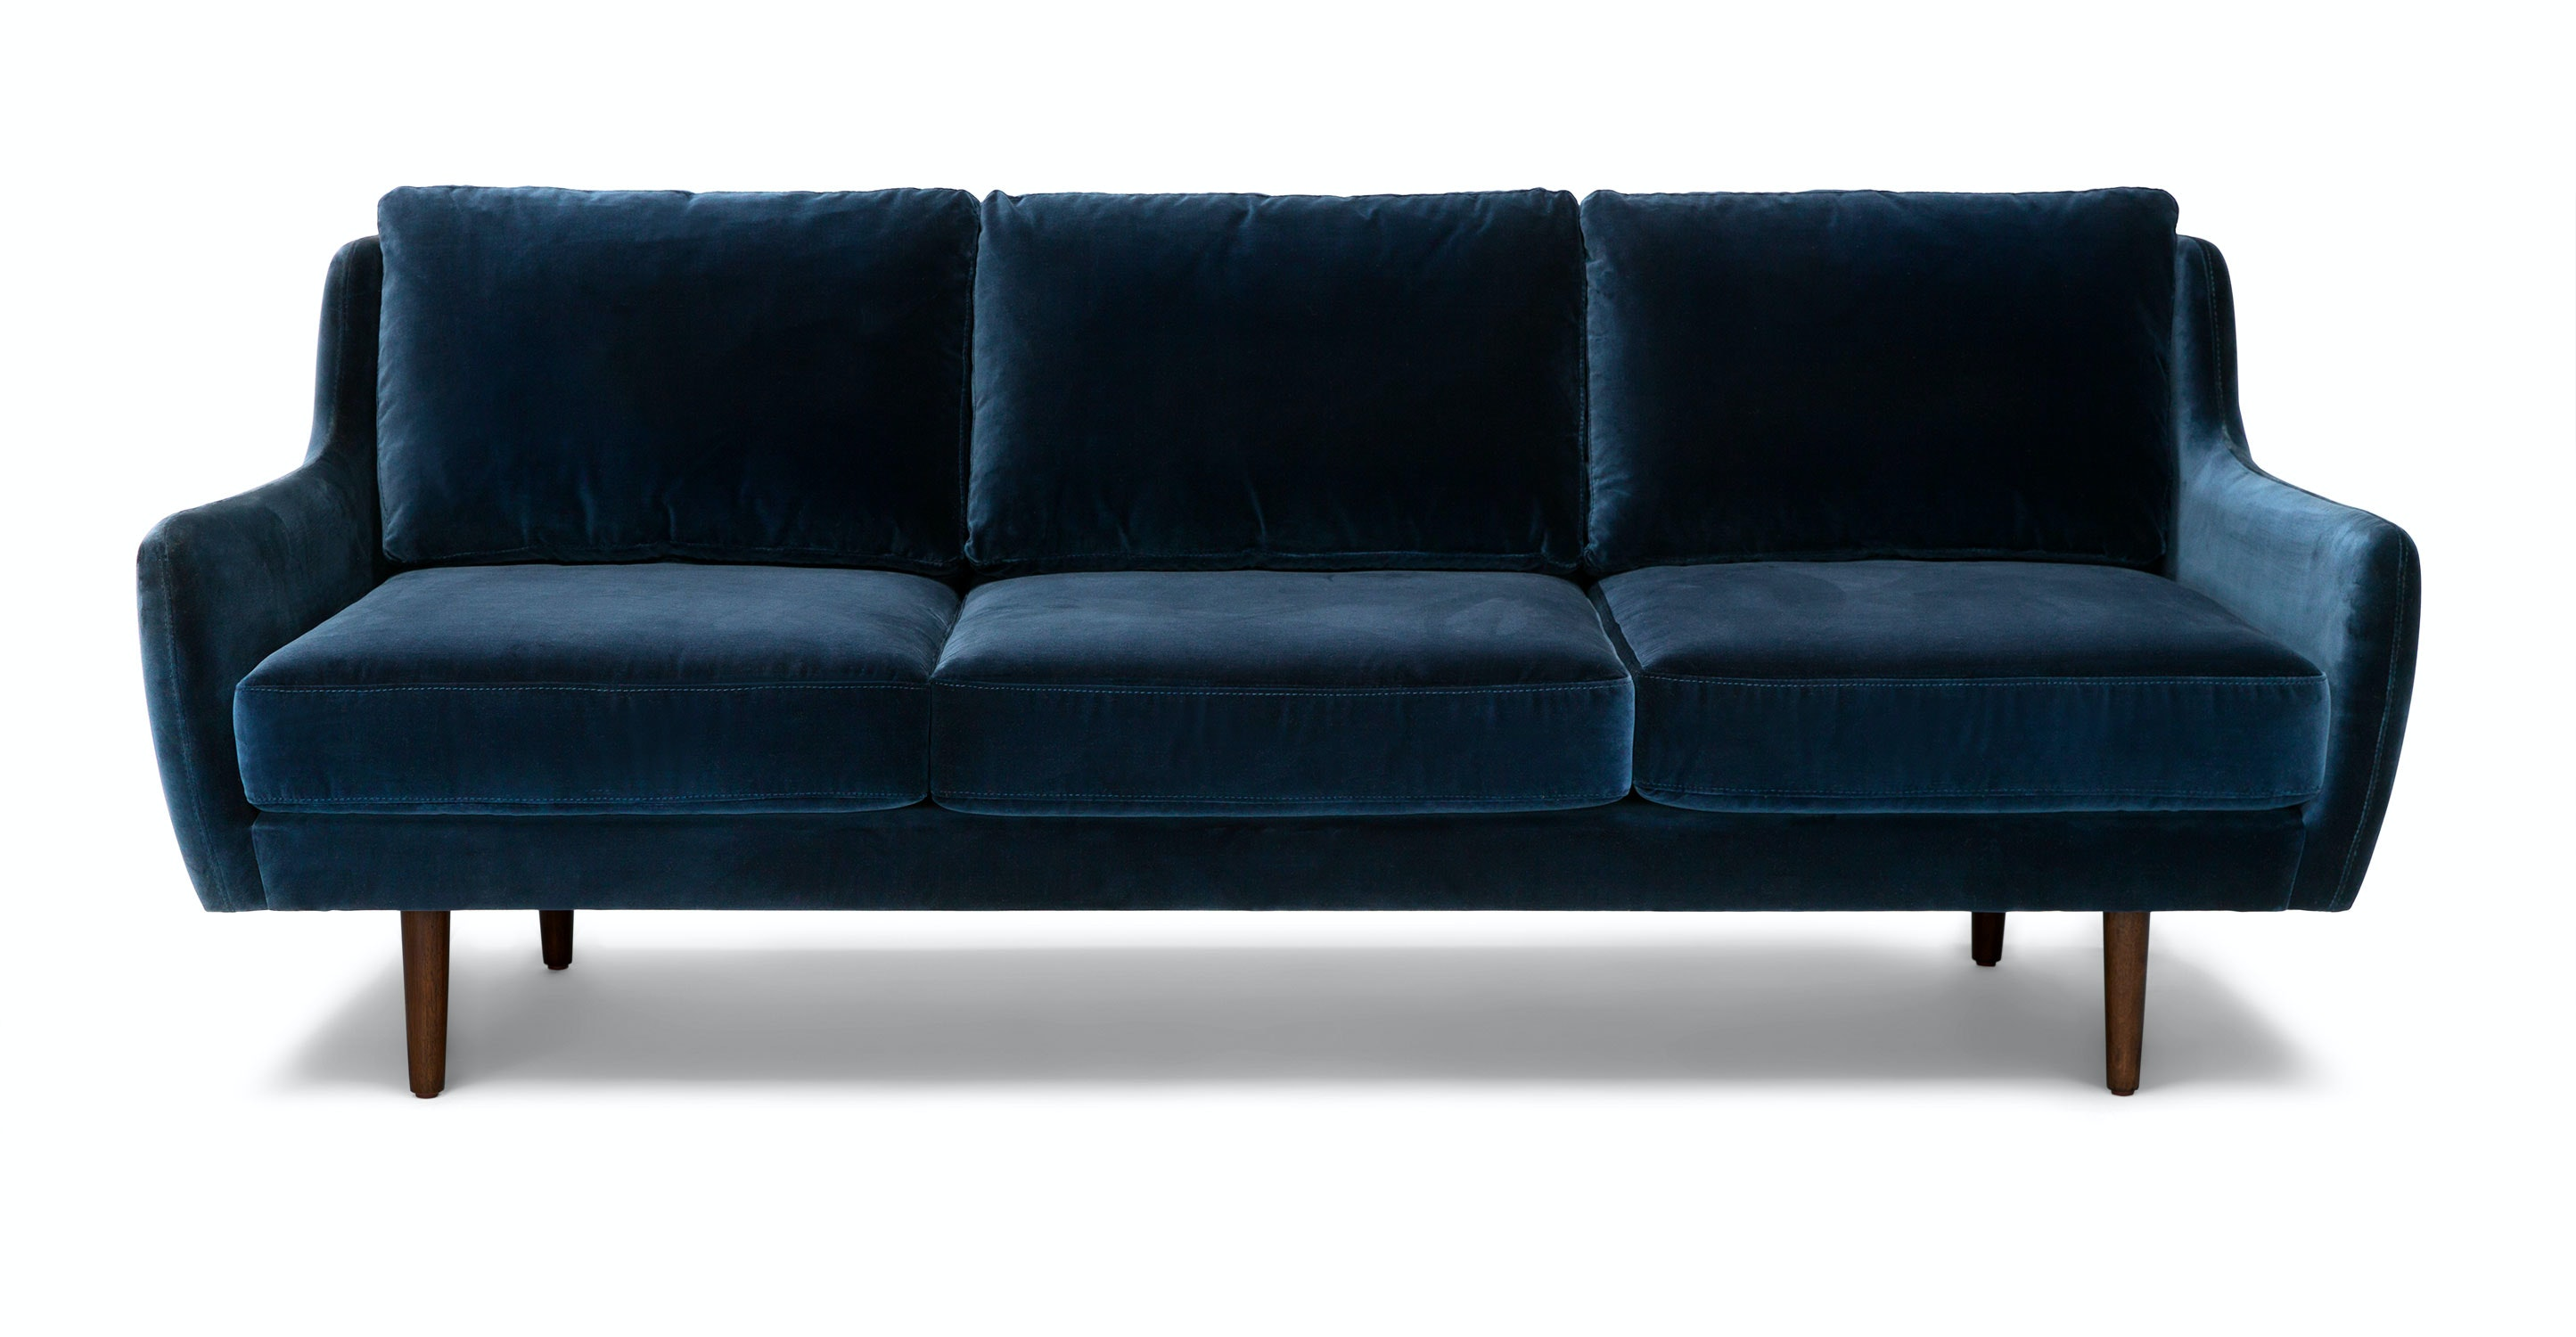 matrix cascadia blue sofa article. Black Bedroom Furniture Sets. Home Design Ideas